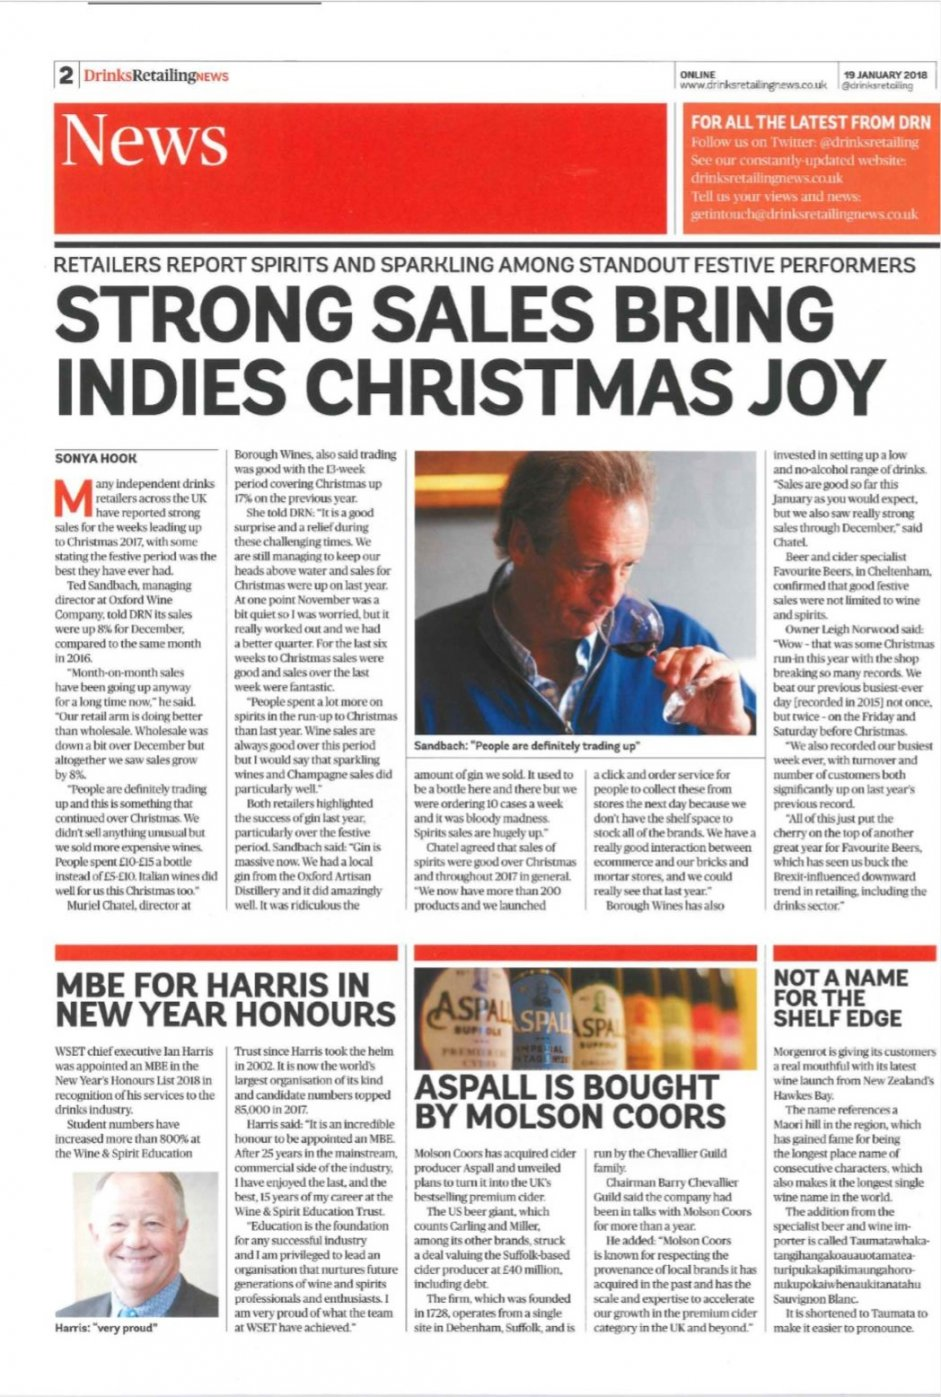 Strong Sales Bring Indies Christmas Joy